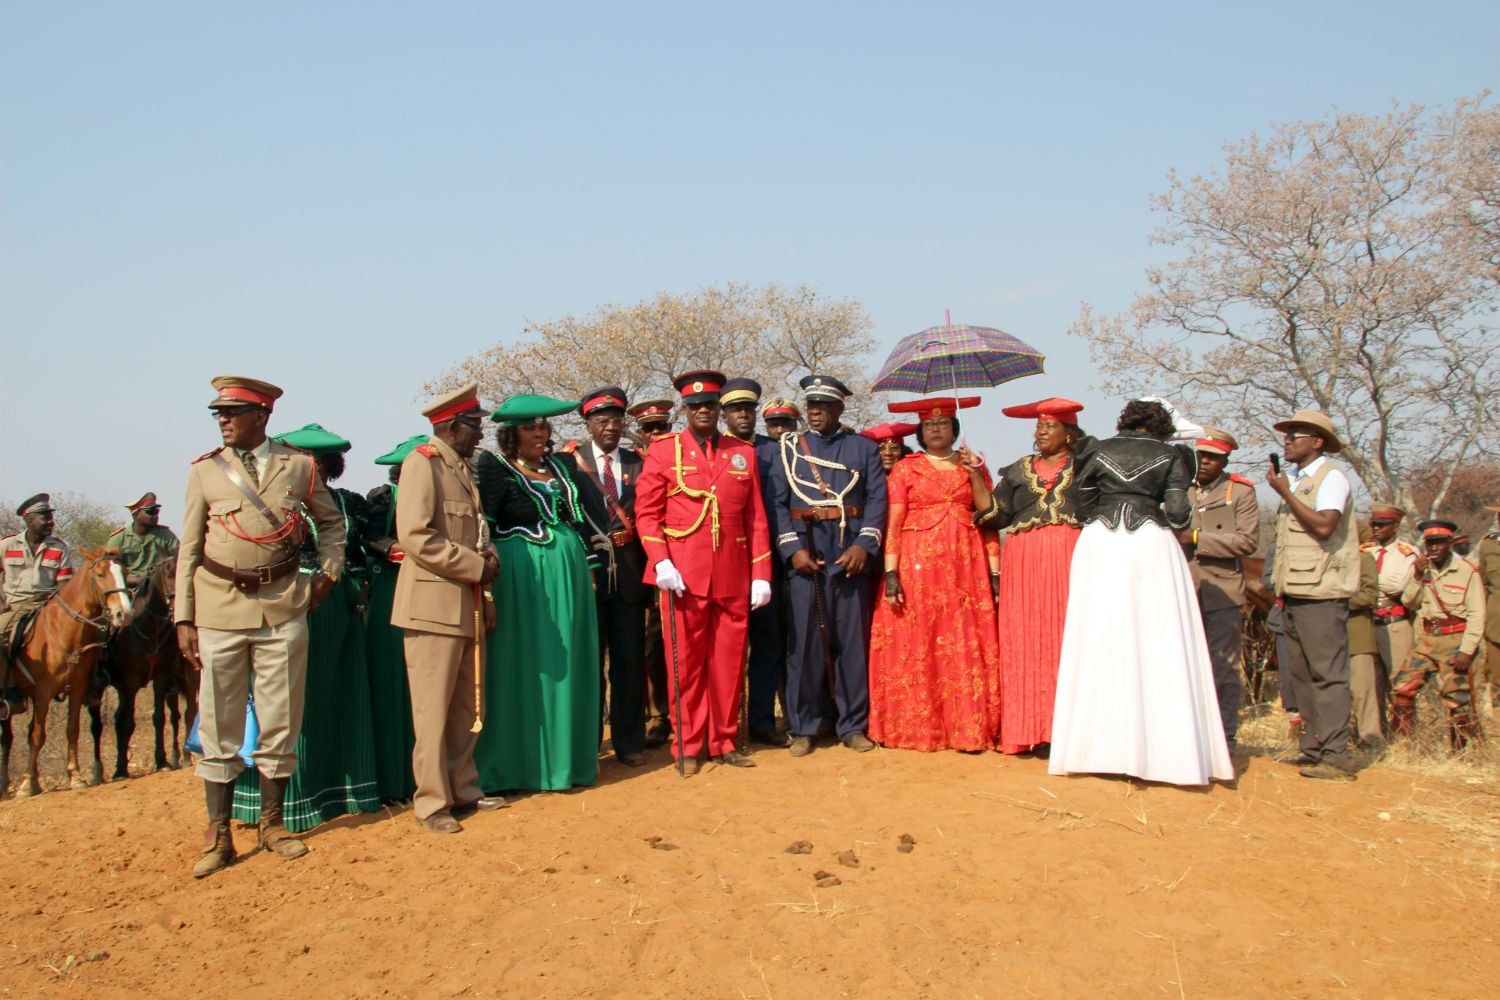 Namibian tribe continue fight for German compensation over colonial  genocide and looted artifacts - The Local